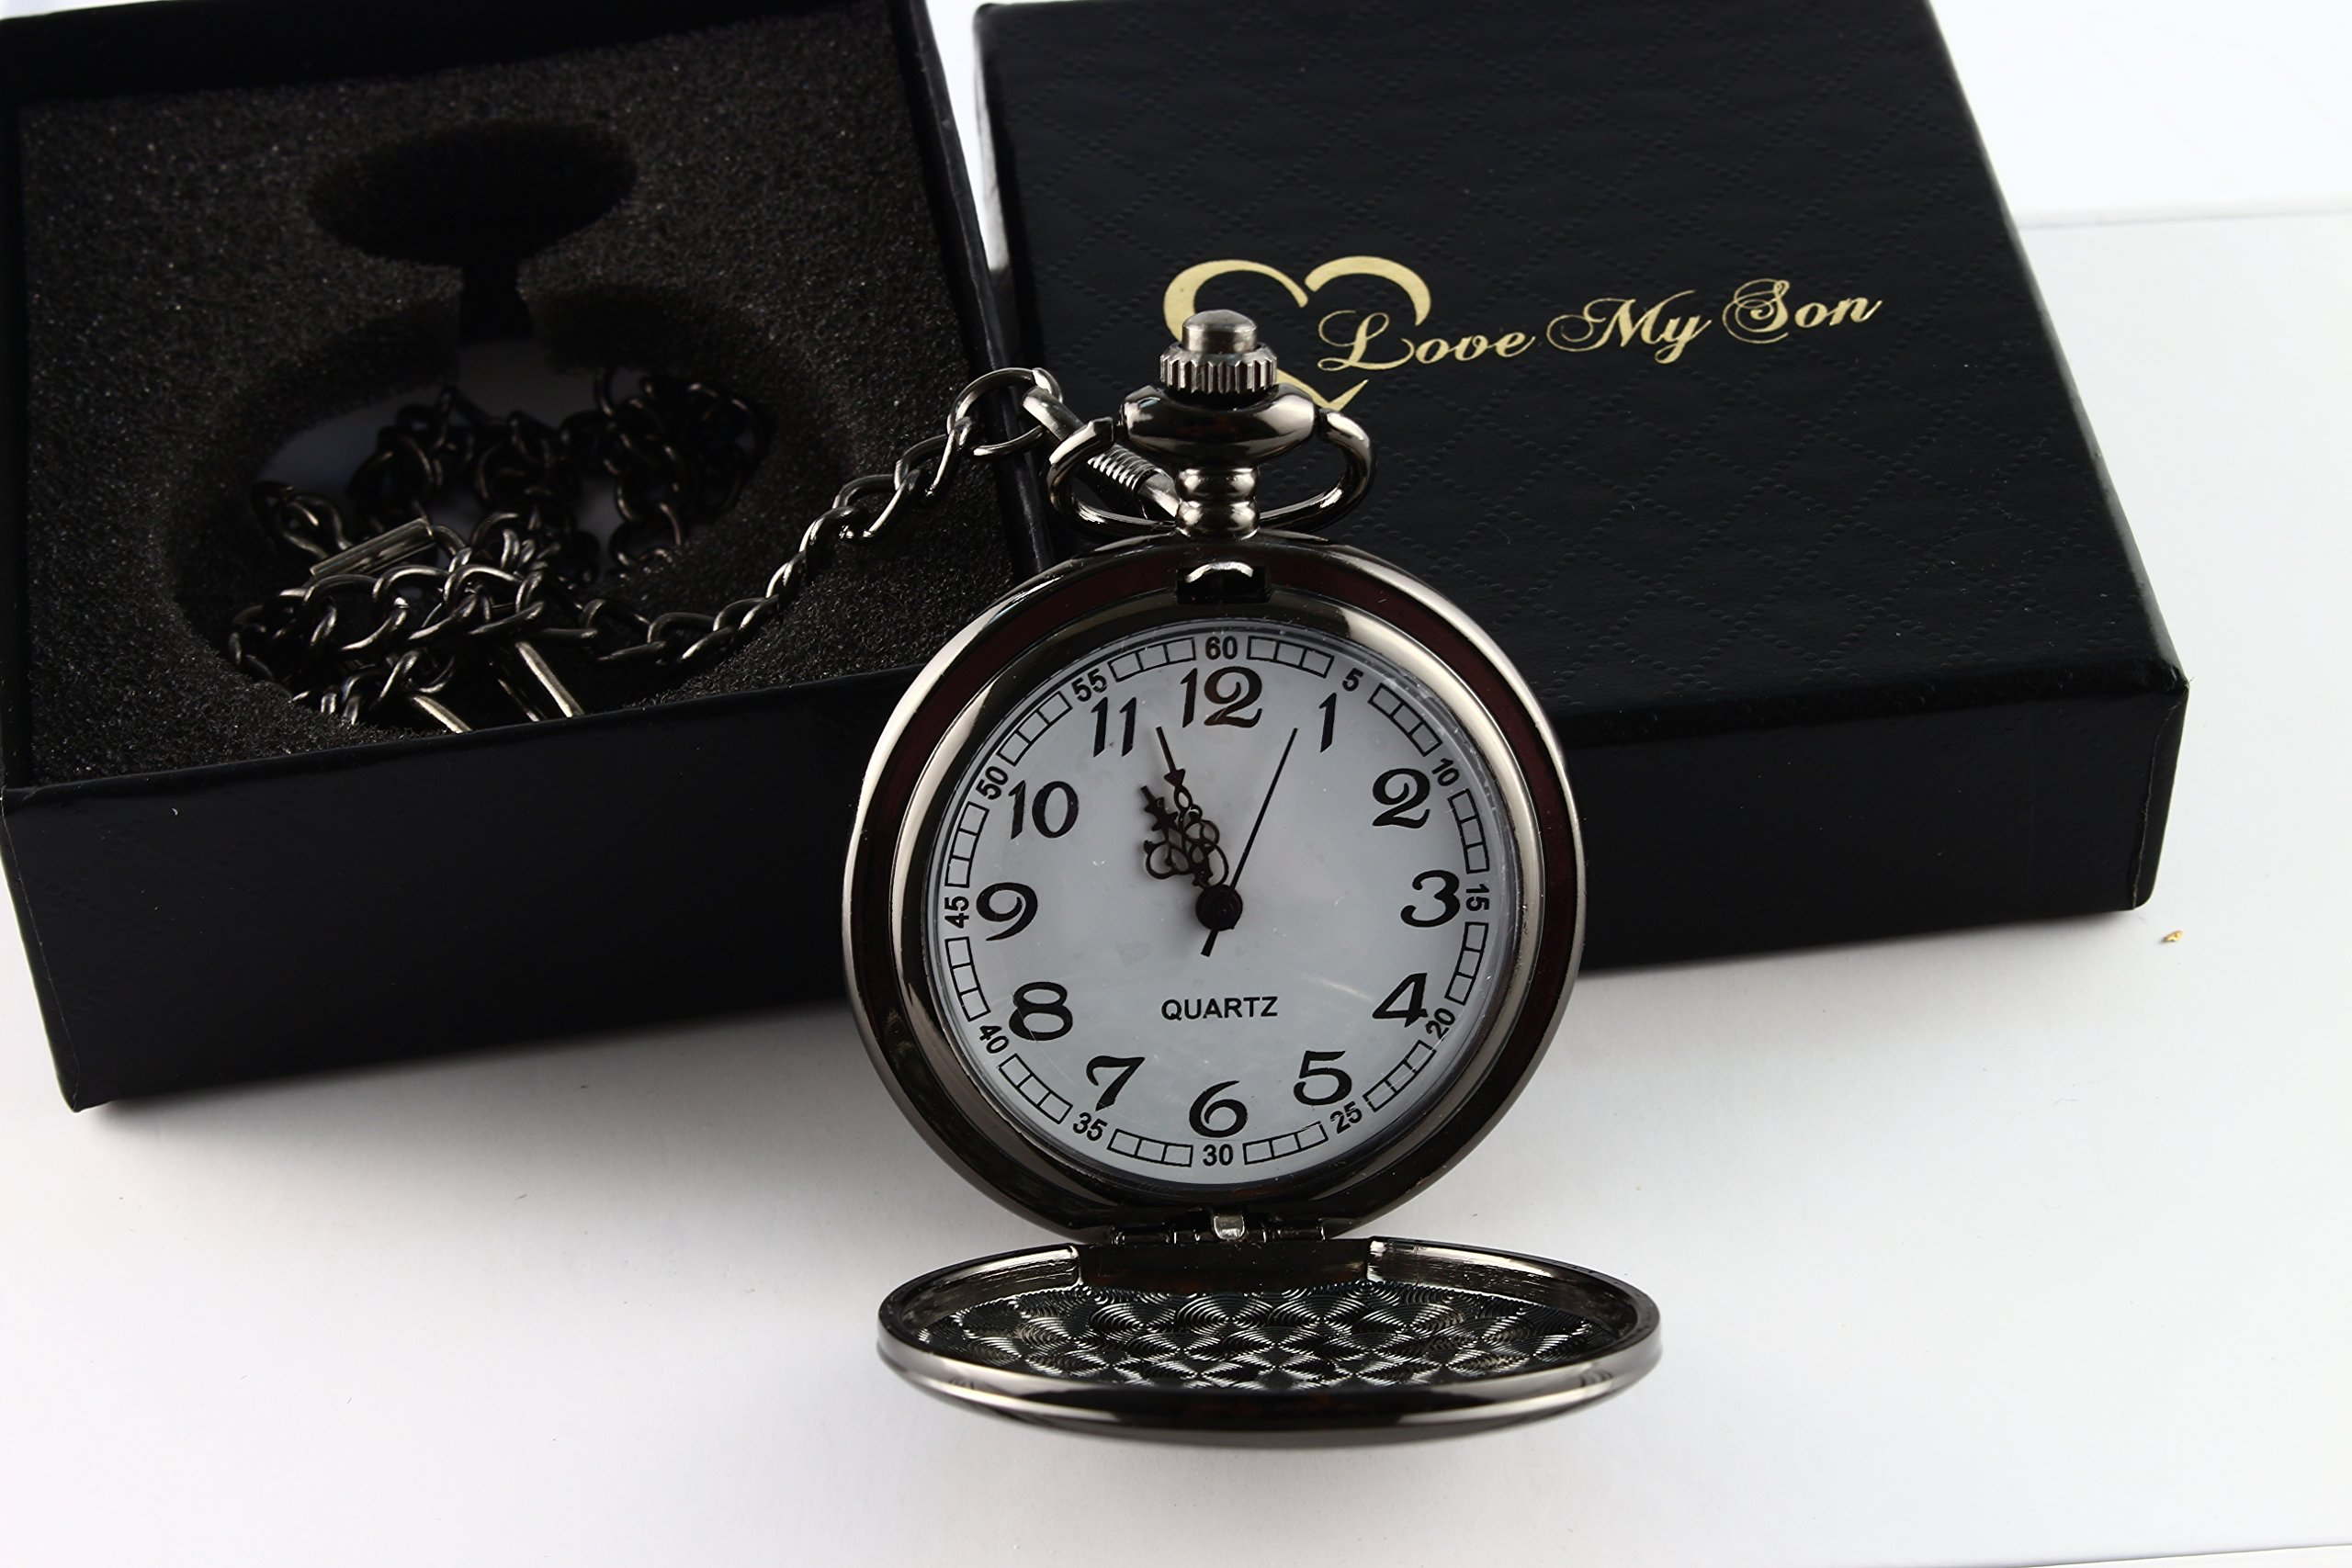 To My Son - Love Dad Pocket Watch with chain Birthday Gift Ideas To Son From Father - Black by GPlee Gift (Image #1)